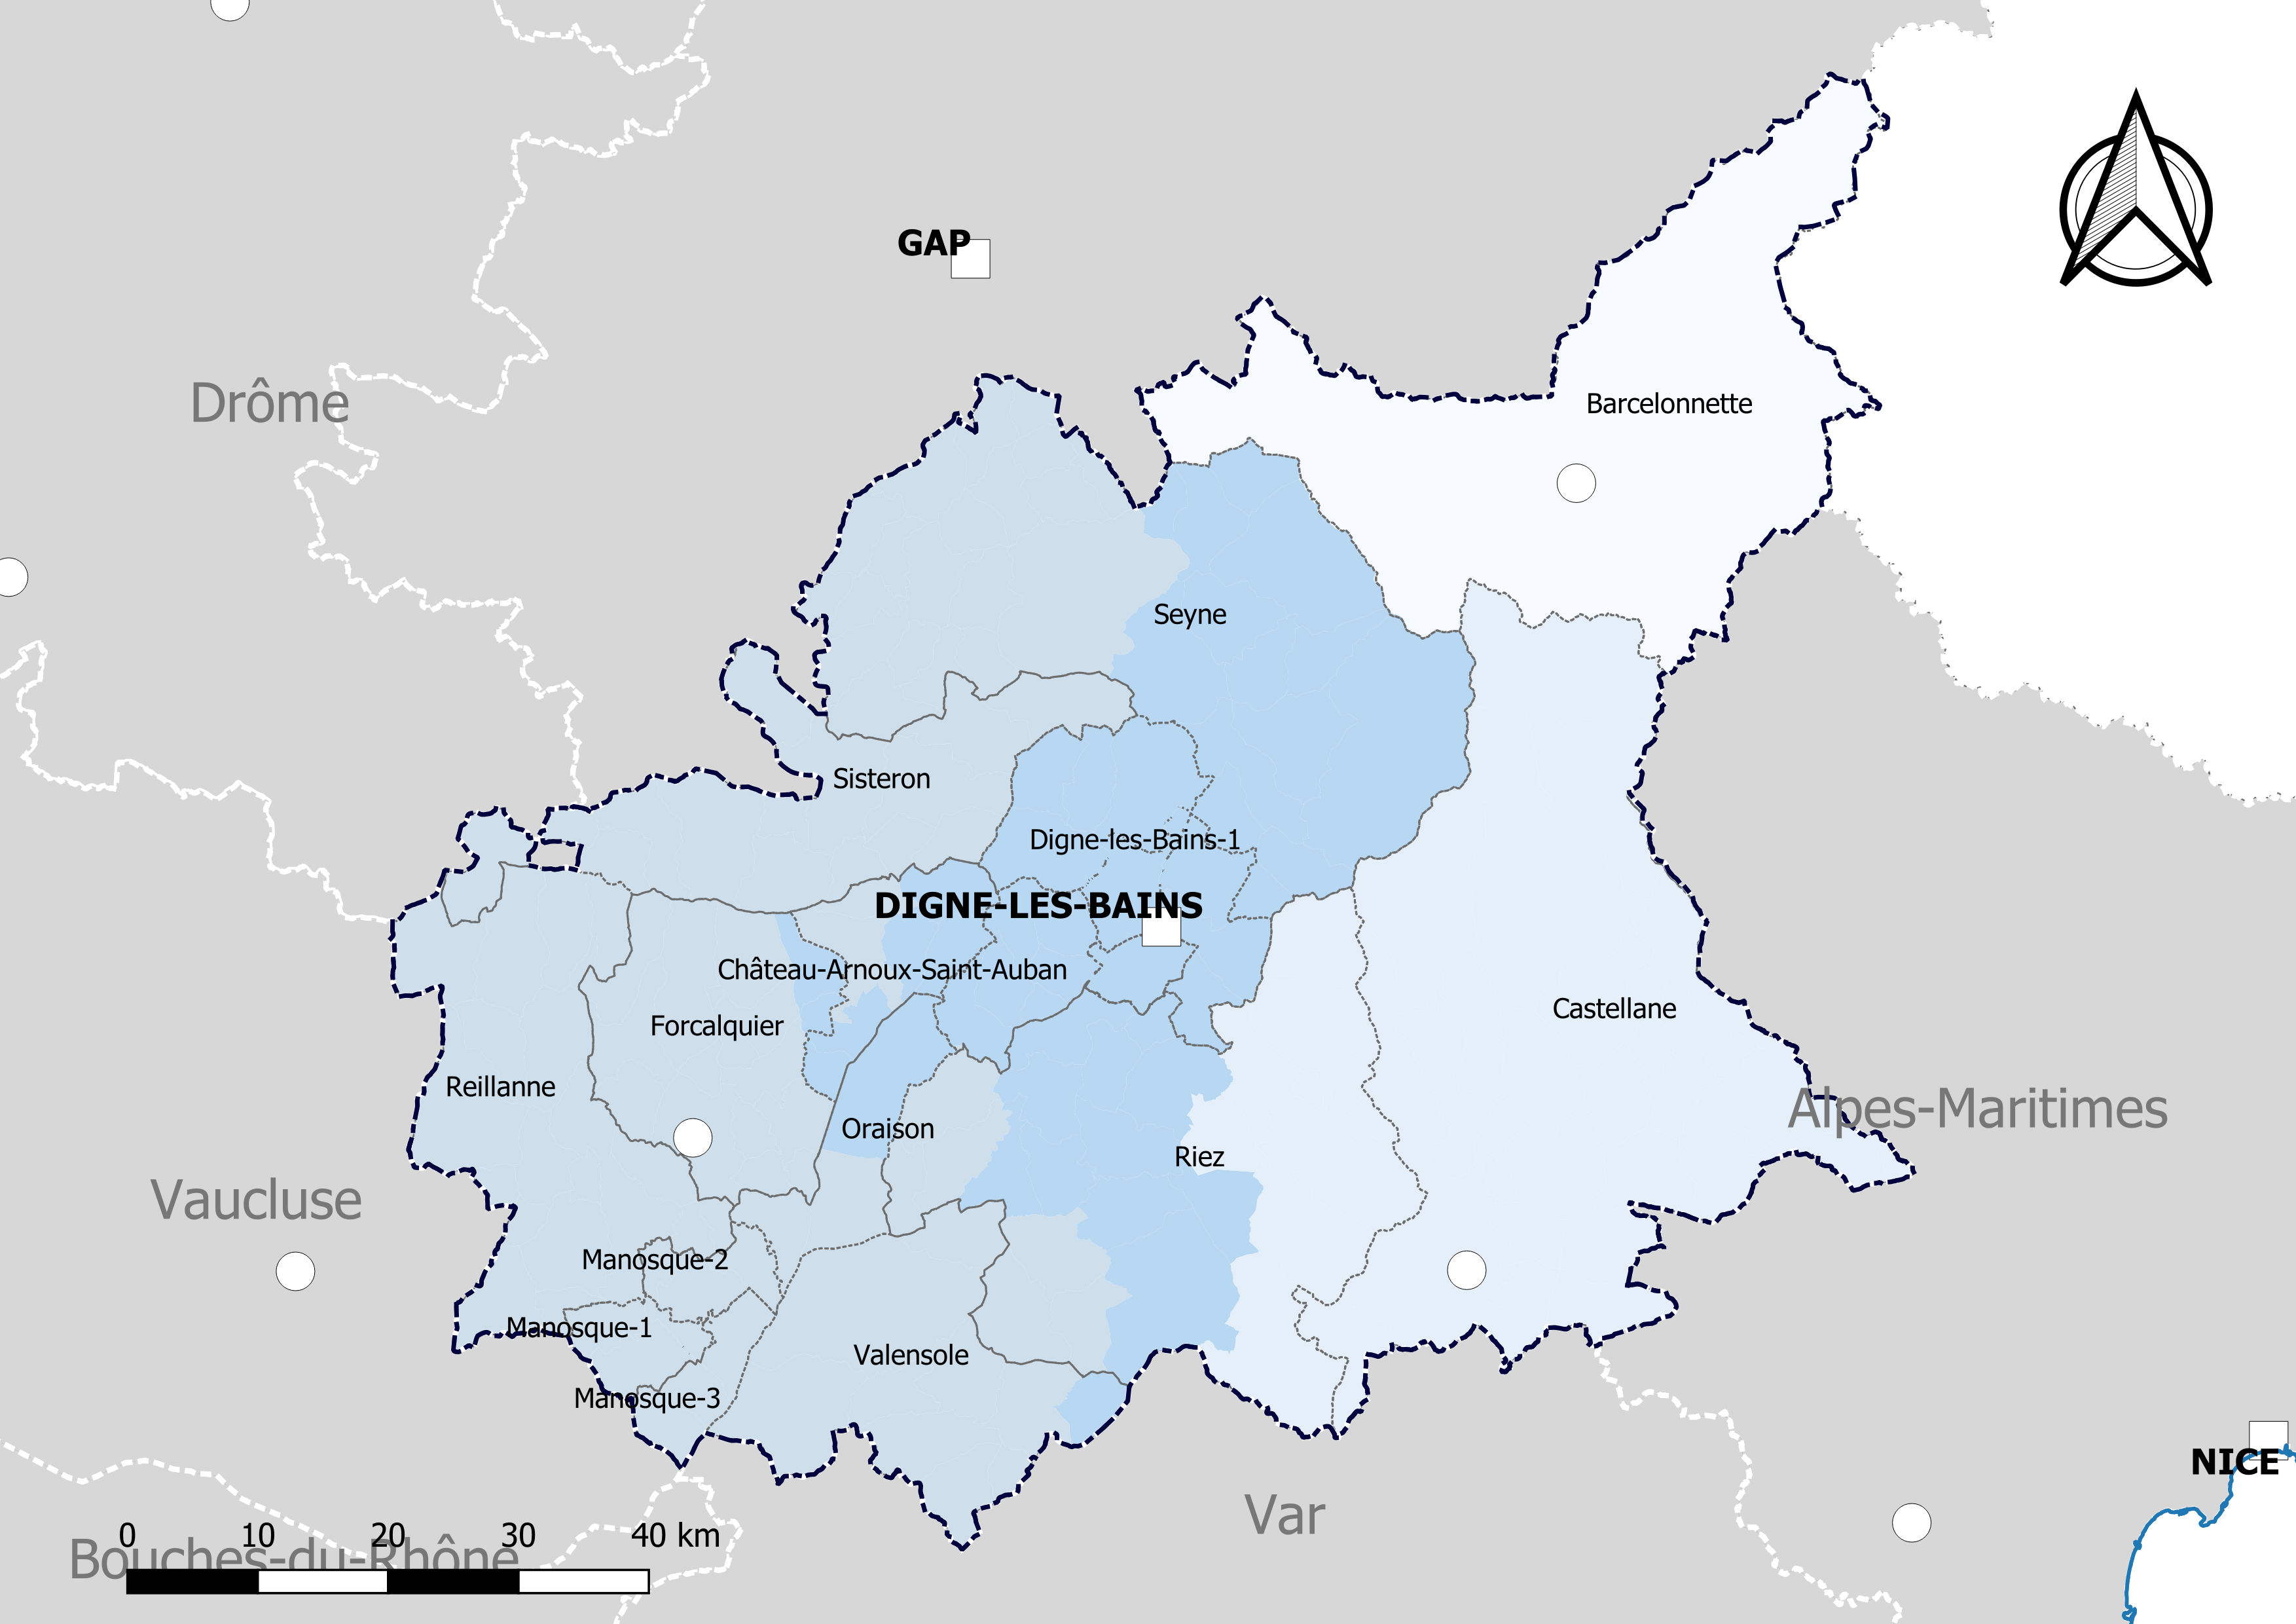 carte des cantons 2020 File:04 Cantons 2019.png   Wikimedia Commons